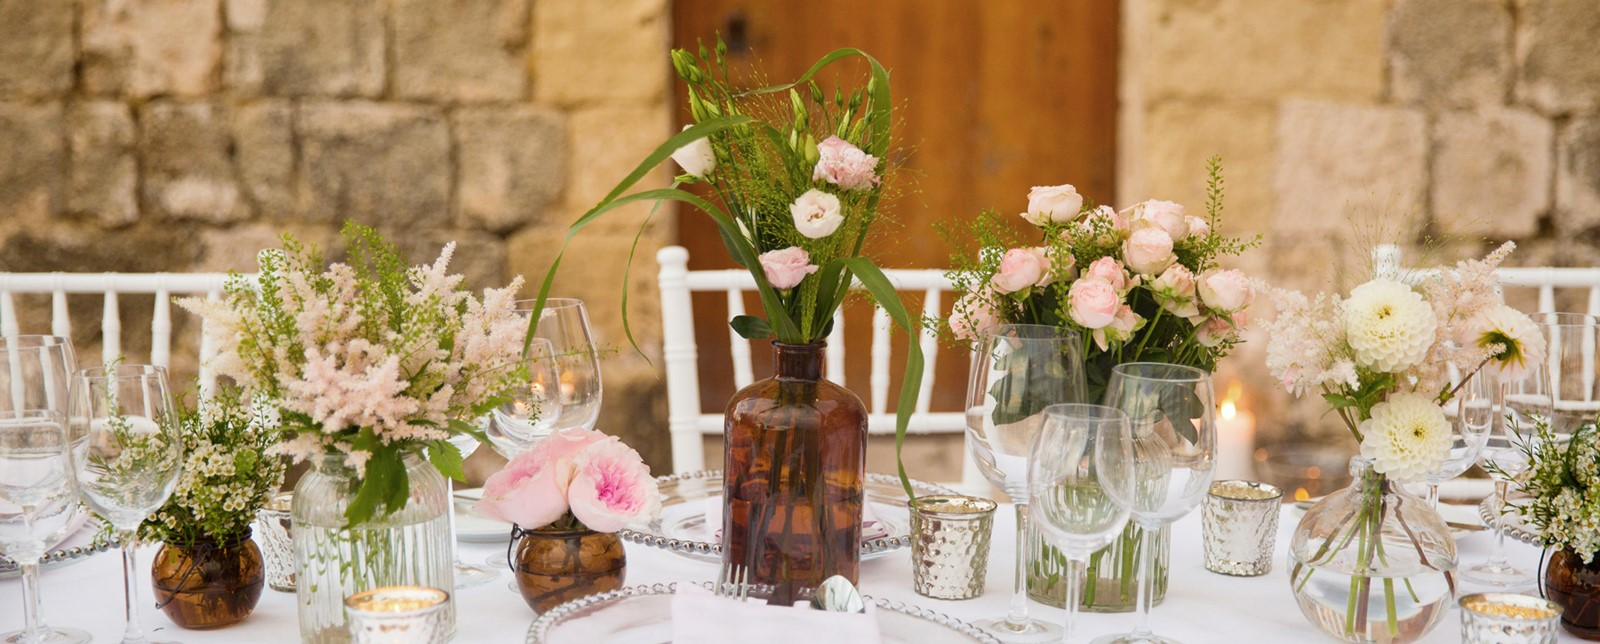 Corinthia St George's wedding table flowers